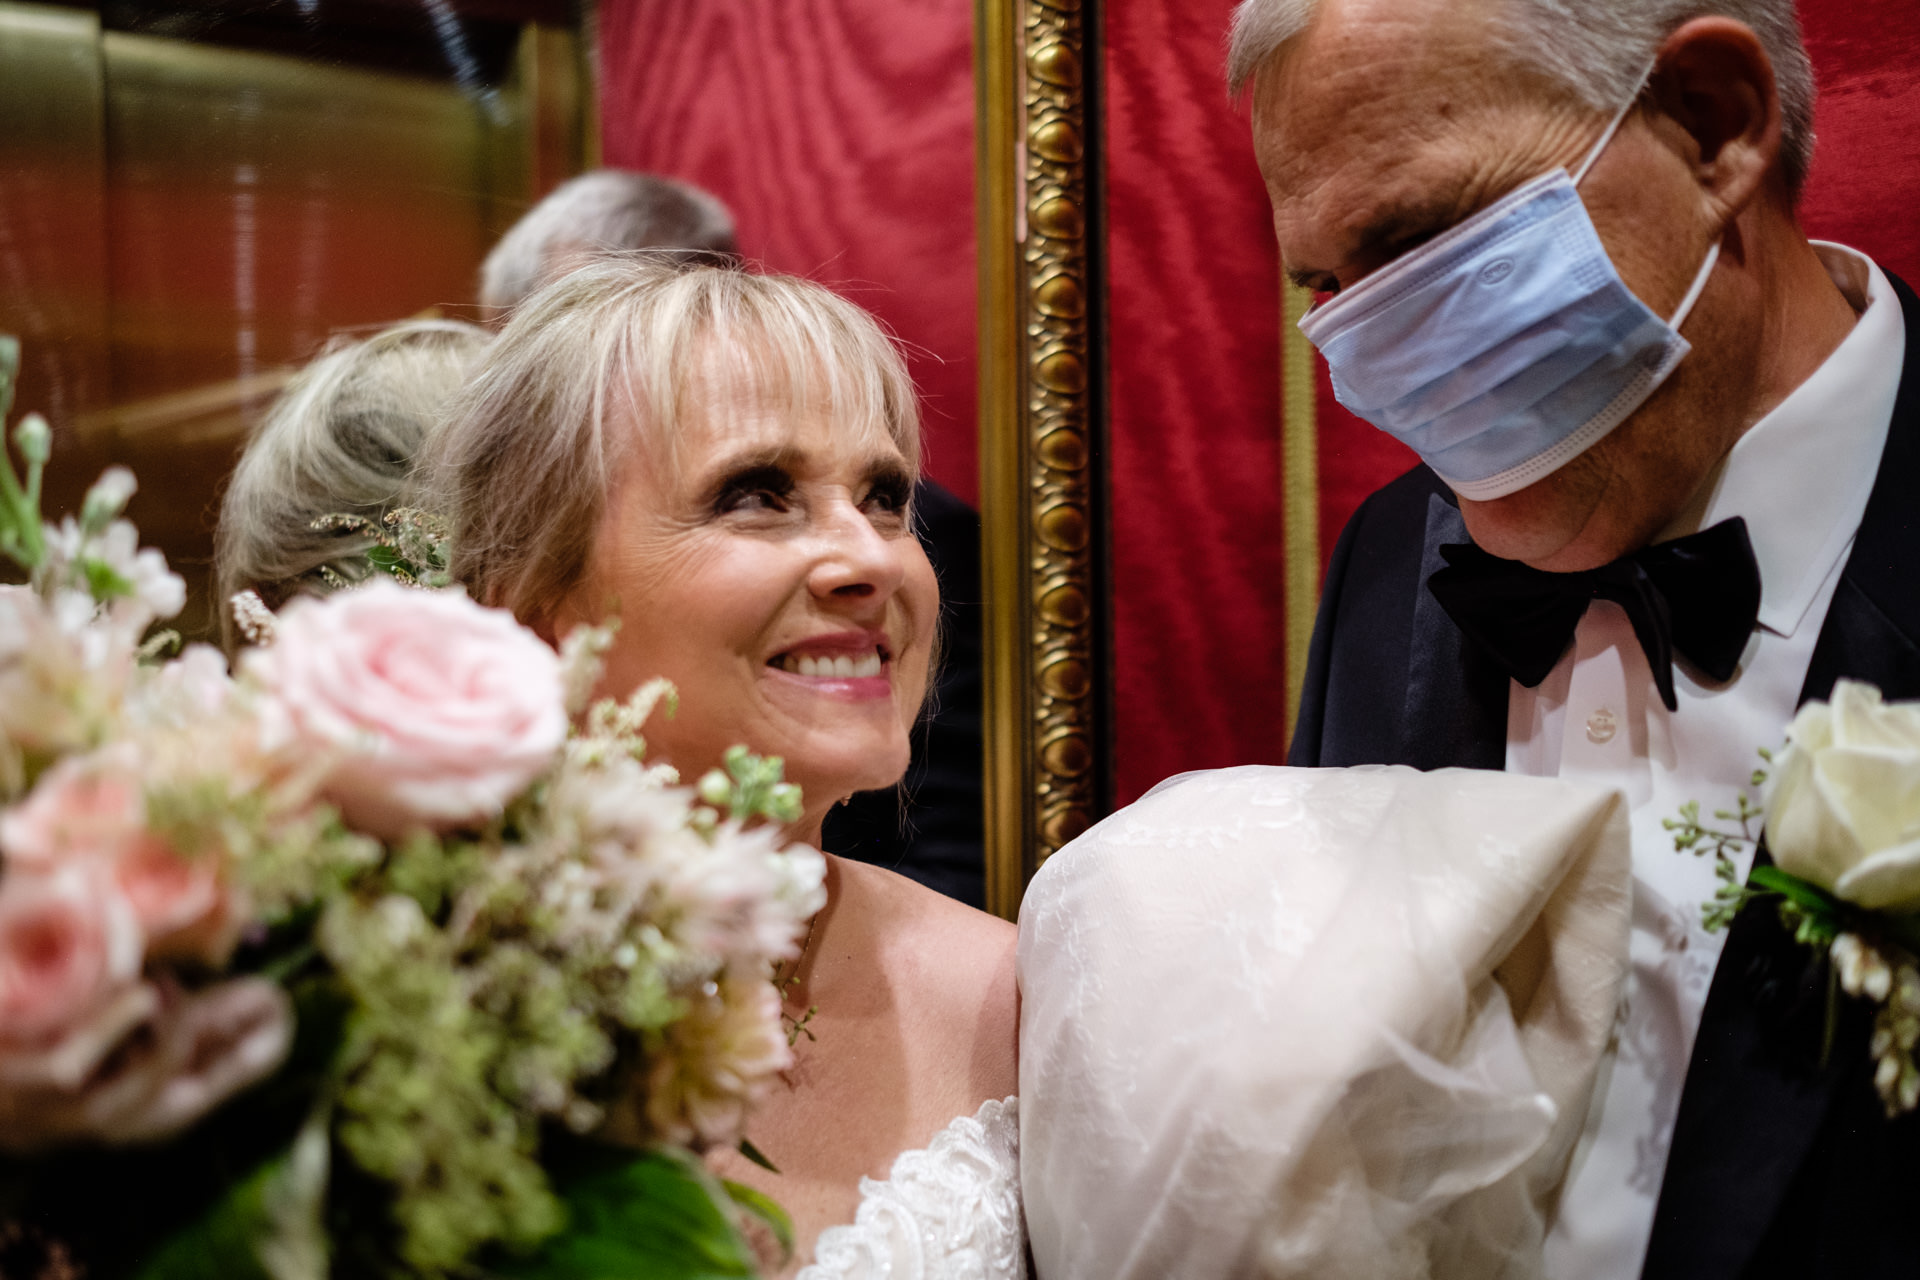 Broadmoor Wedding Venue Photography at Colorado Springs | The bride laughs at how the grooms COVID-19 mask covered his face